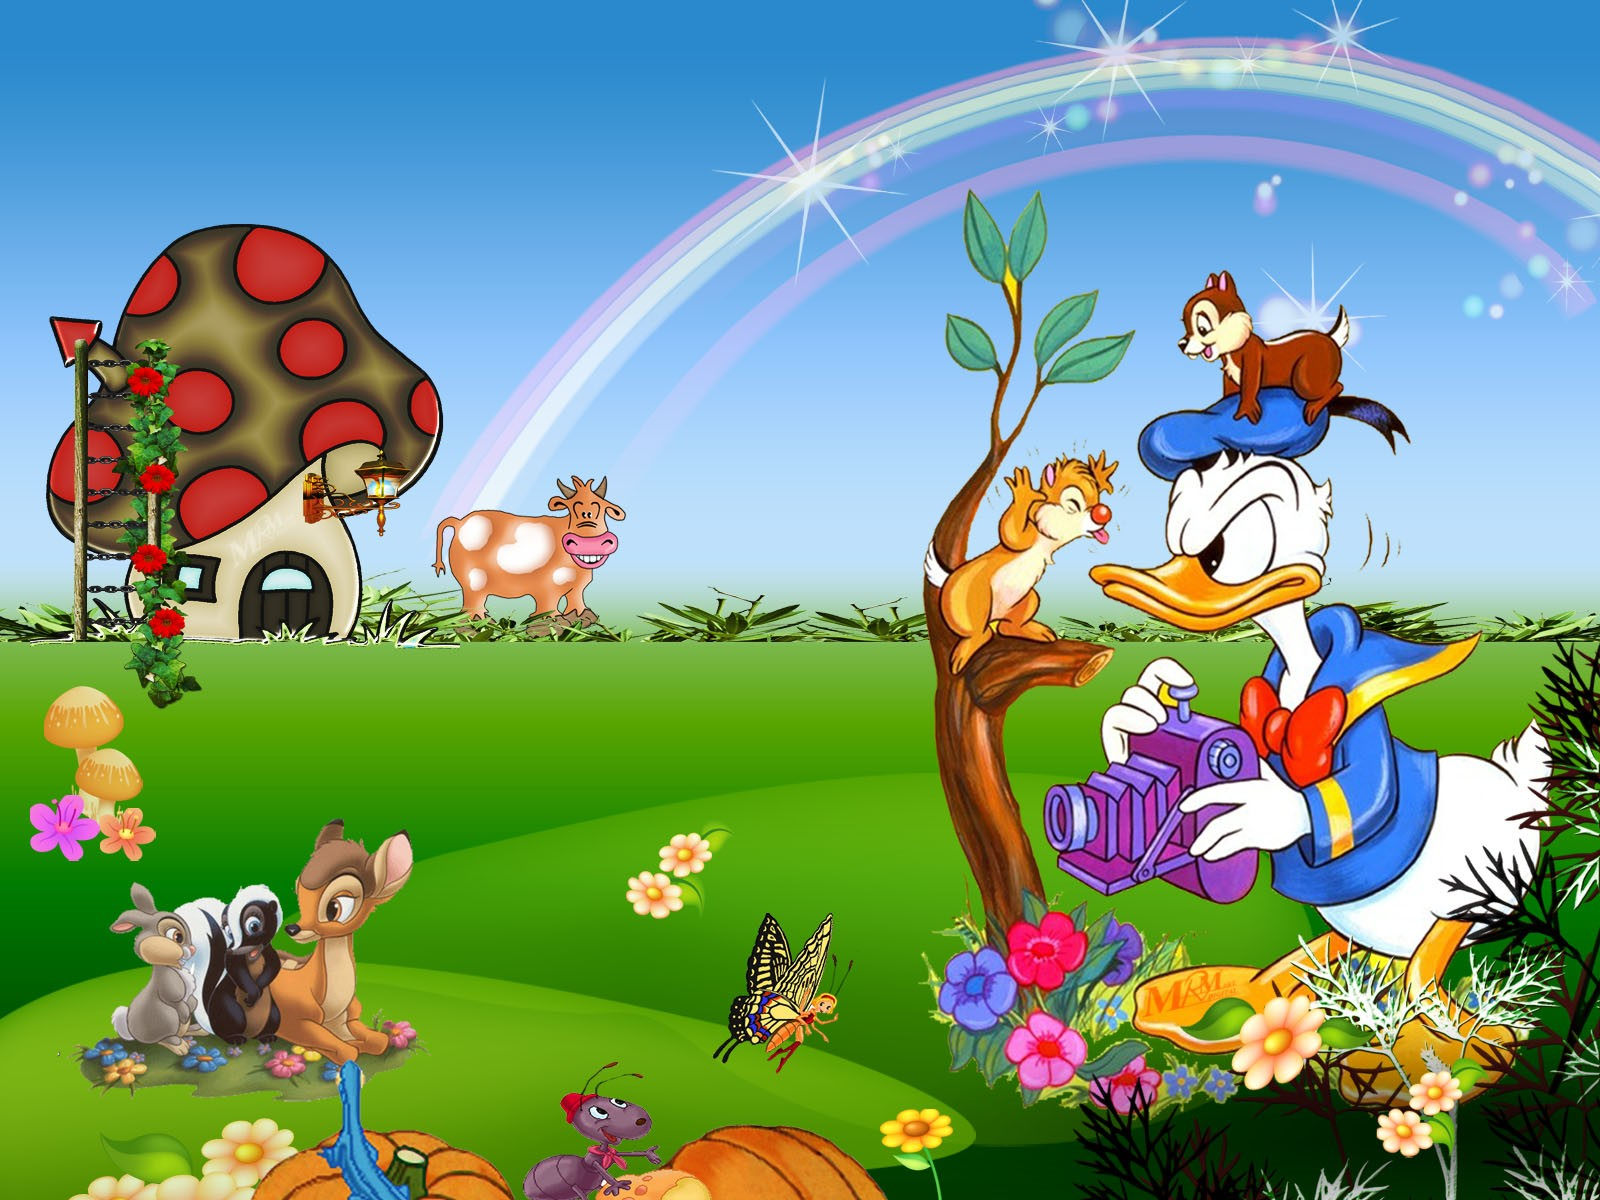 Download cute 3d cartoon wallpapers free download for desktop or mobile device. 3D Cartoon Wallpapers - Real HD Wallpapers